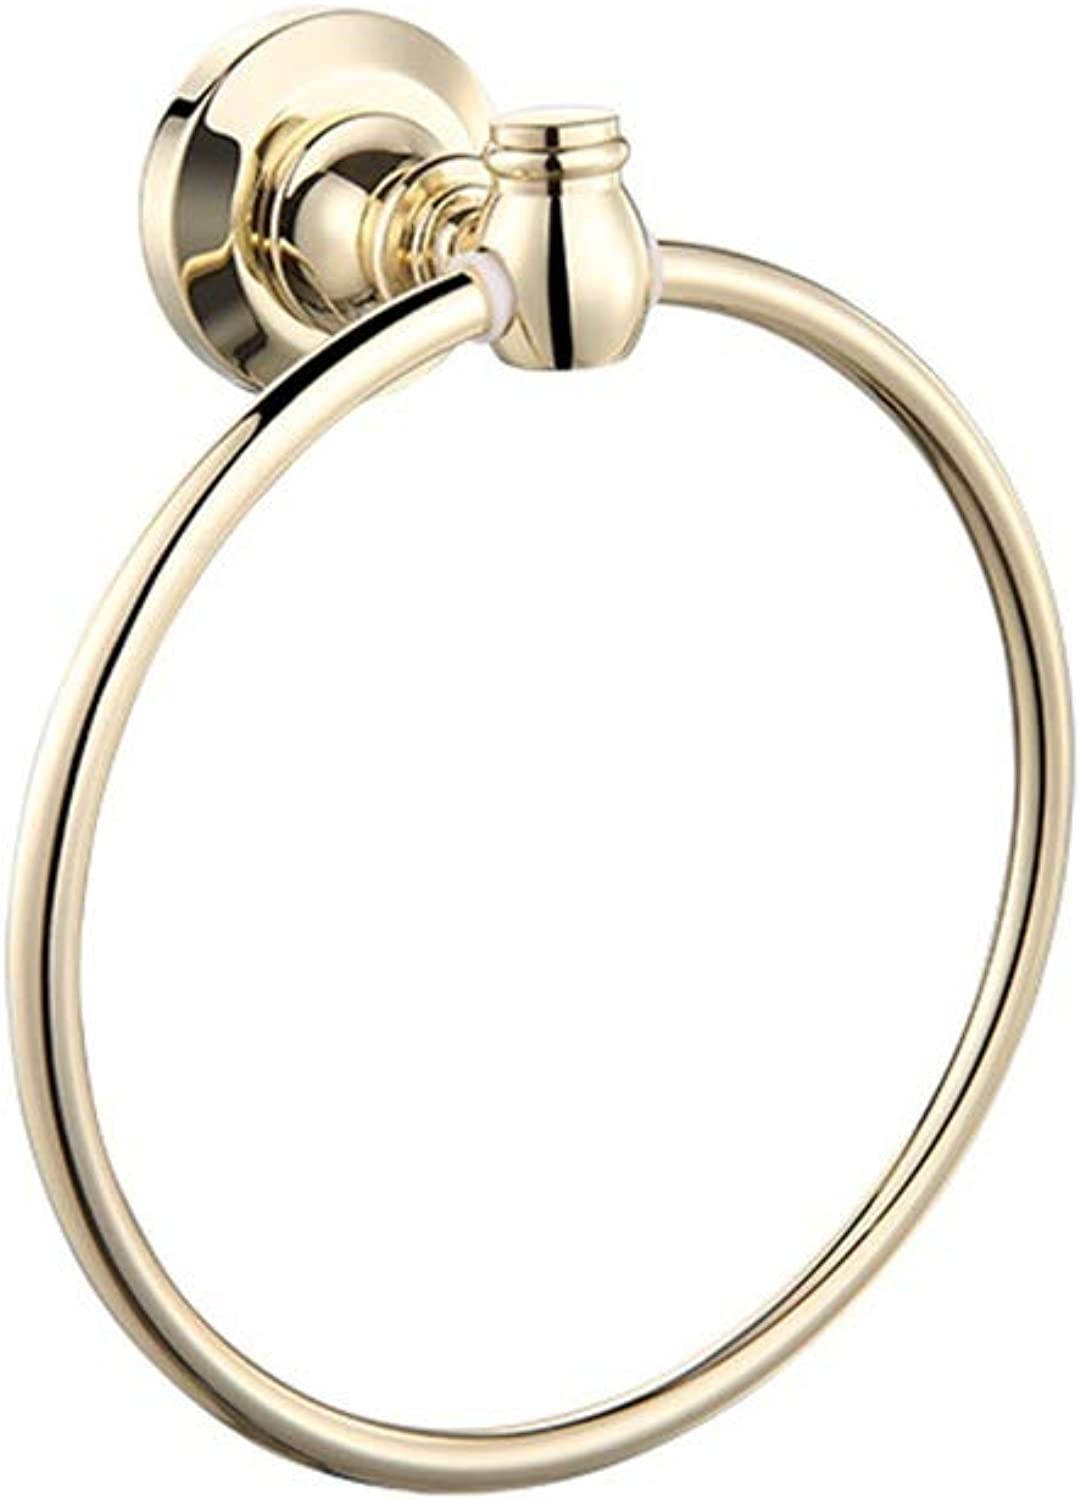 Towel Ring - Stainless Steel Towel Ring Copper Bathroom Towel Ring Vintage European Bathroom Towel Ring Towel Ring - Towel Ring HATHOR-23 2563